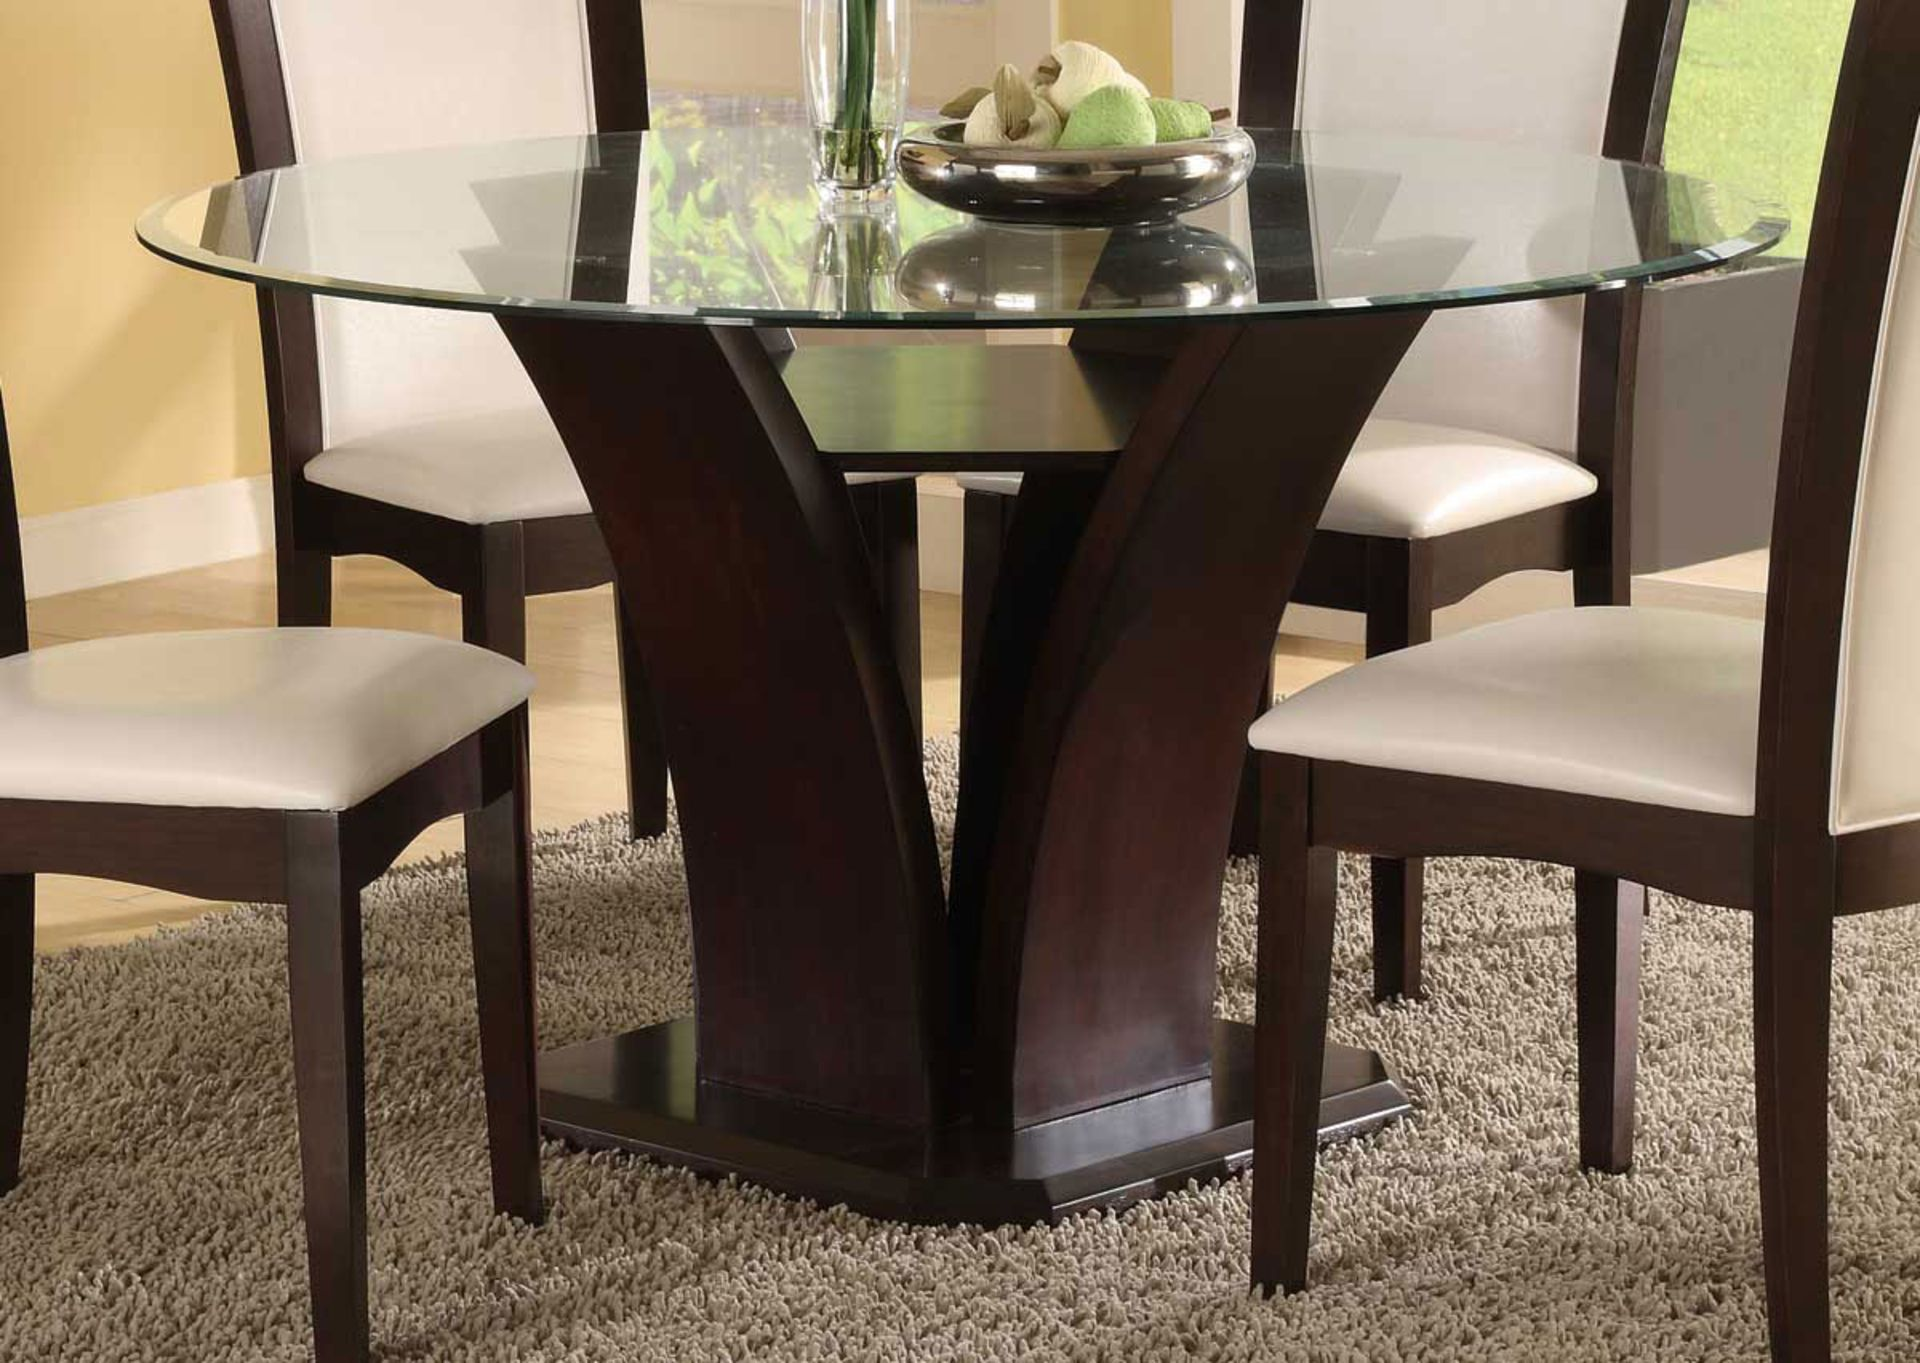 Metal Top Dining Tables Designs Bianca Glass Top Dining Table Legged Inspiring Ideas